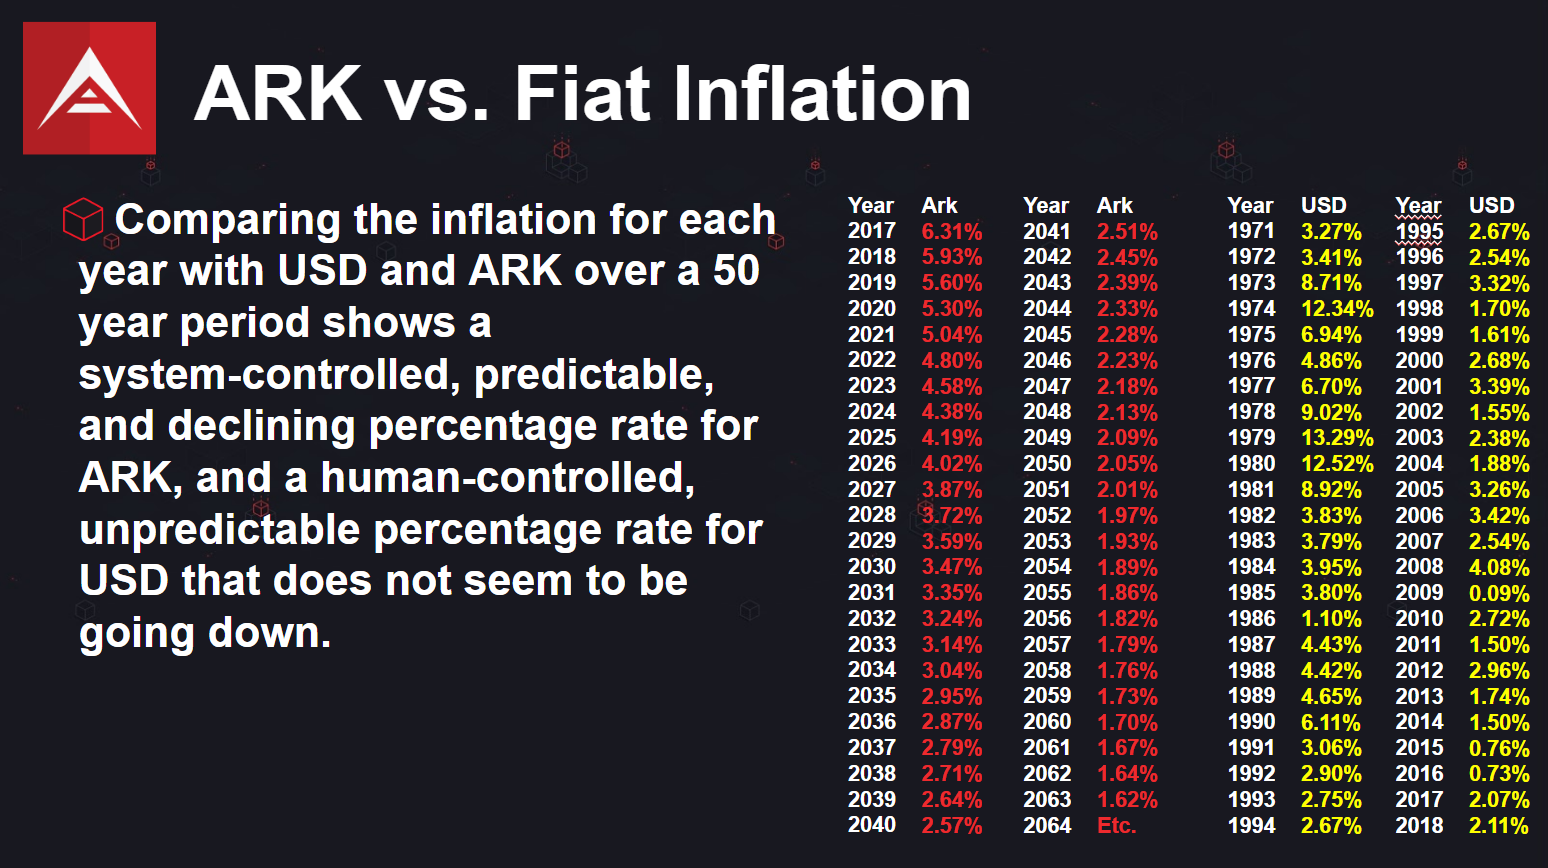 ARK inflation rate is predictable, system controlled. Fiat inflation is unpredictable and human-controlled.